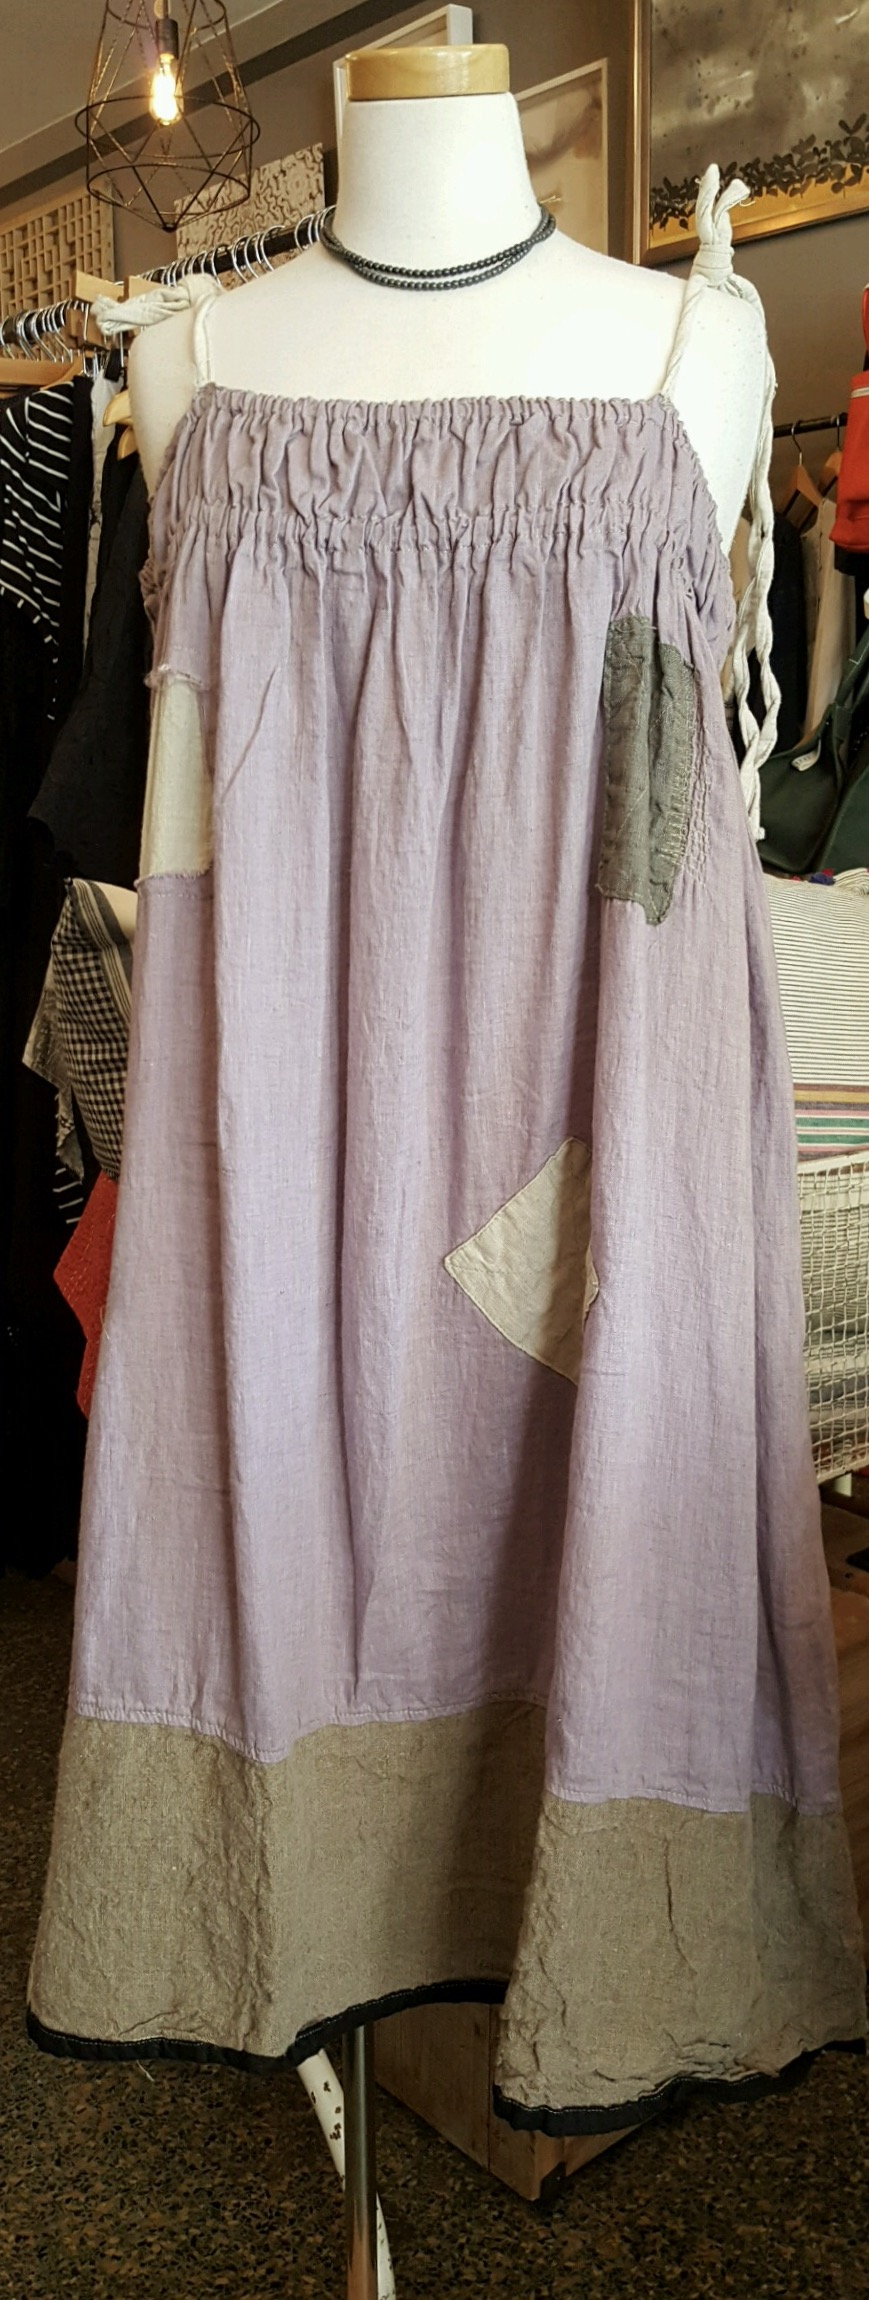 FullSizeRender_6 copy.jpg